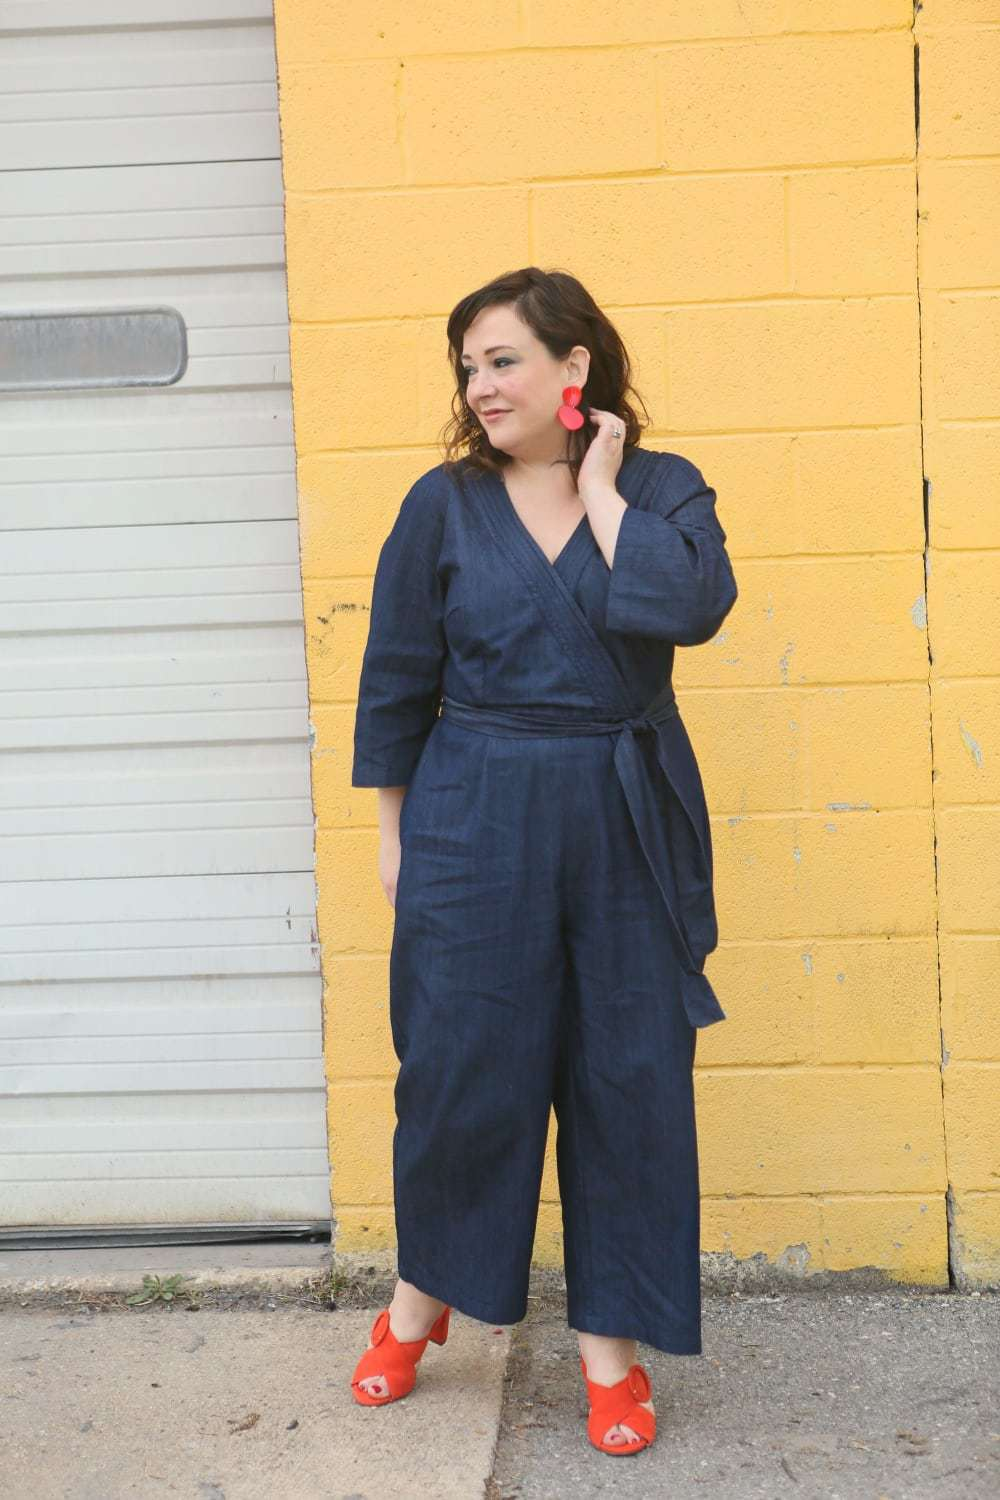 Wardrobe Oxygen in a denim wrap style jumpsuit from ELOQUII with orange suede Ann Taylor heeled sandals and red lucite statement earrings - ELOQUII Denim Jumpsuit styled by popular Washington DC petite fashion blogger, Wardrobe Oxygen